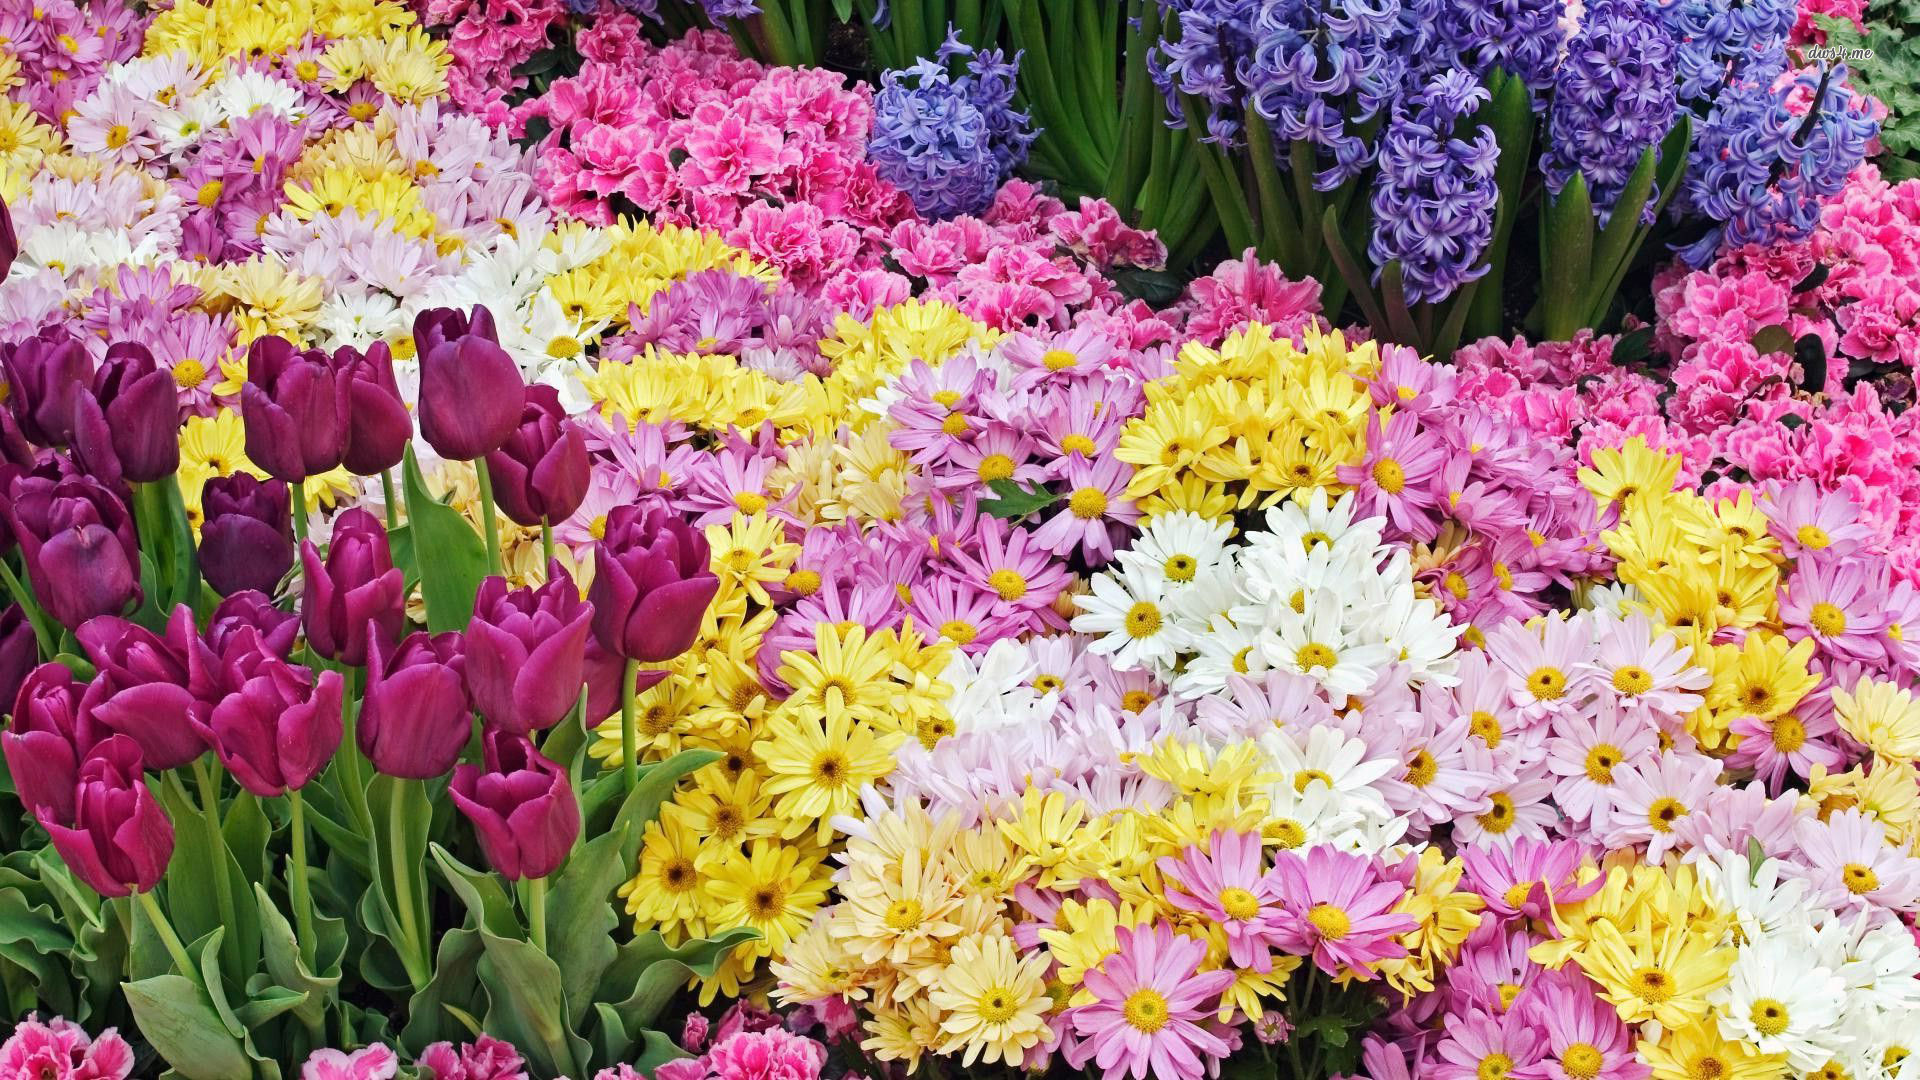 Wallpaper spring flowers pictures pic wpb00482 wallpaper download mightylinksfo